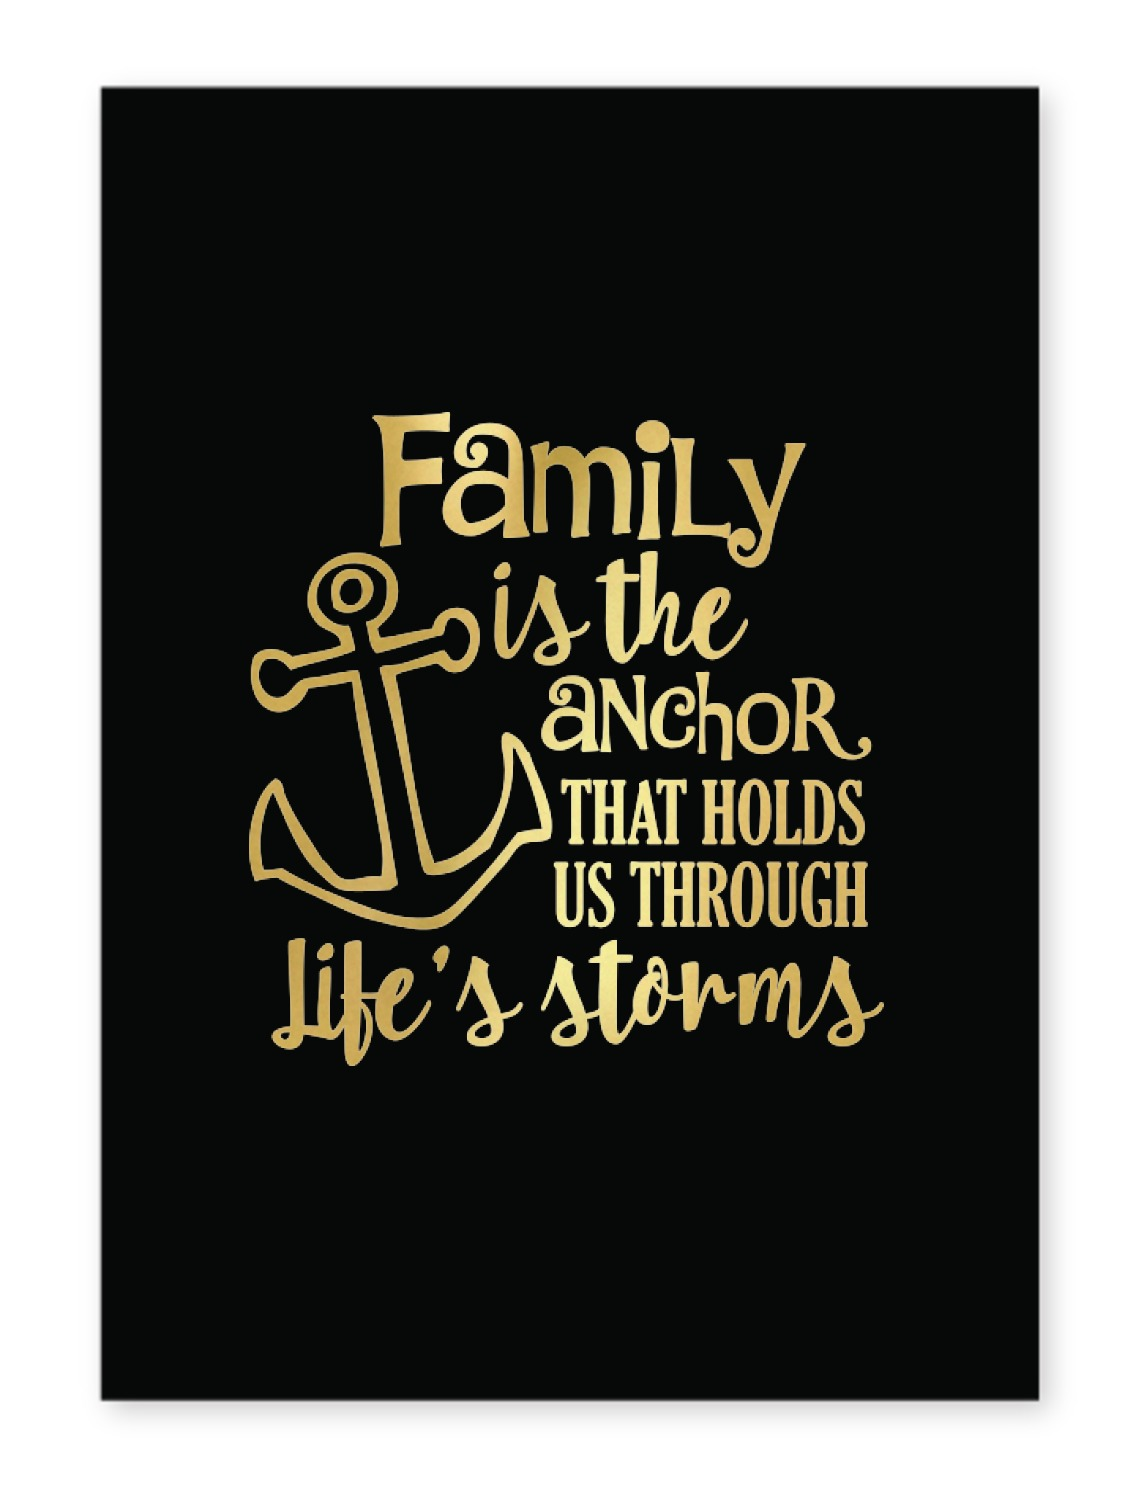 5 Quotes To Brighten Your Day: Family Quotes And Sayings 5x7 Black Foil Print